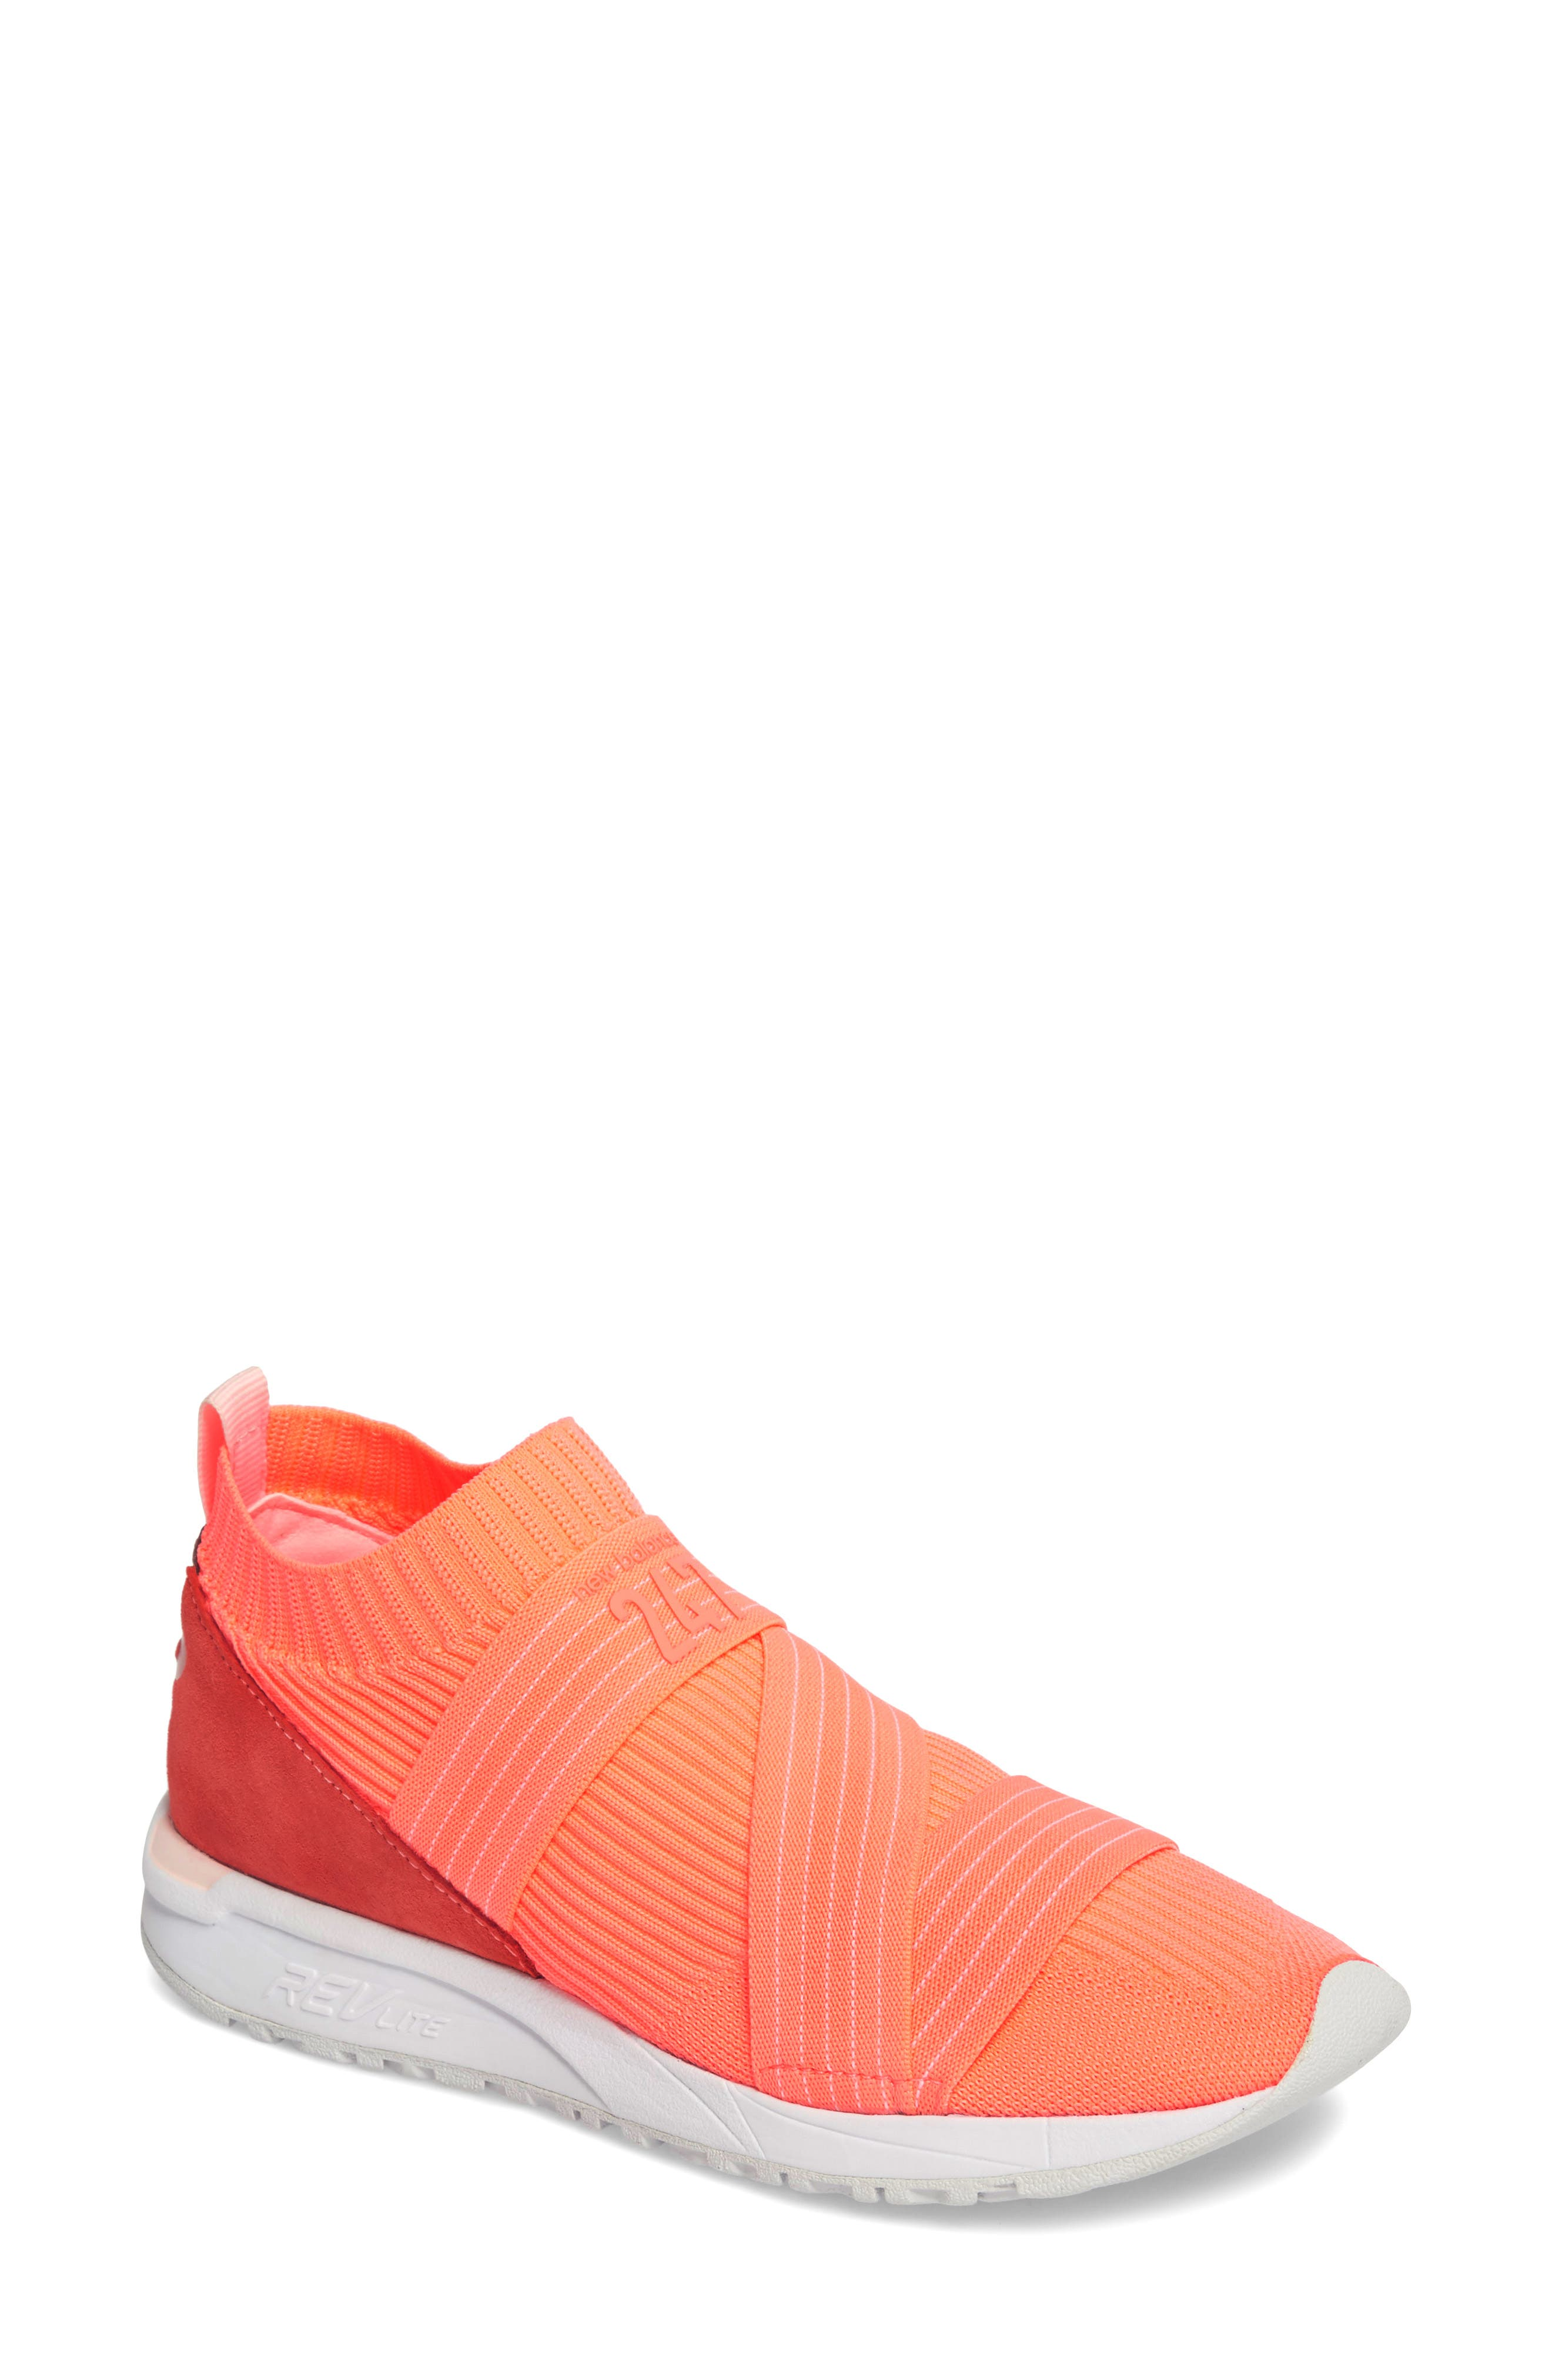 247 Knit Sneaker,                         Main,                         color, Fiji